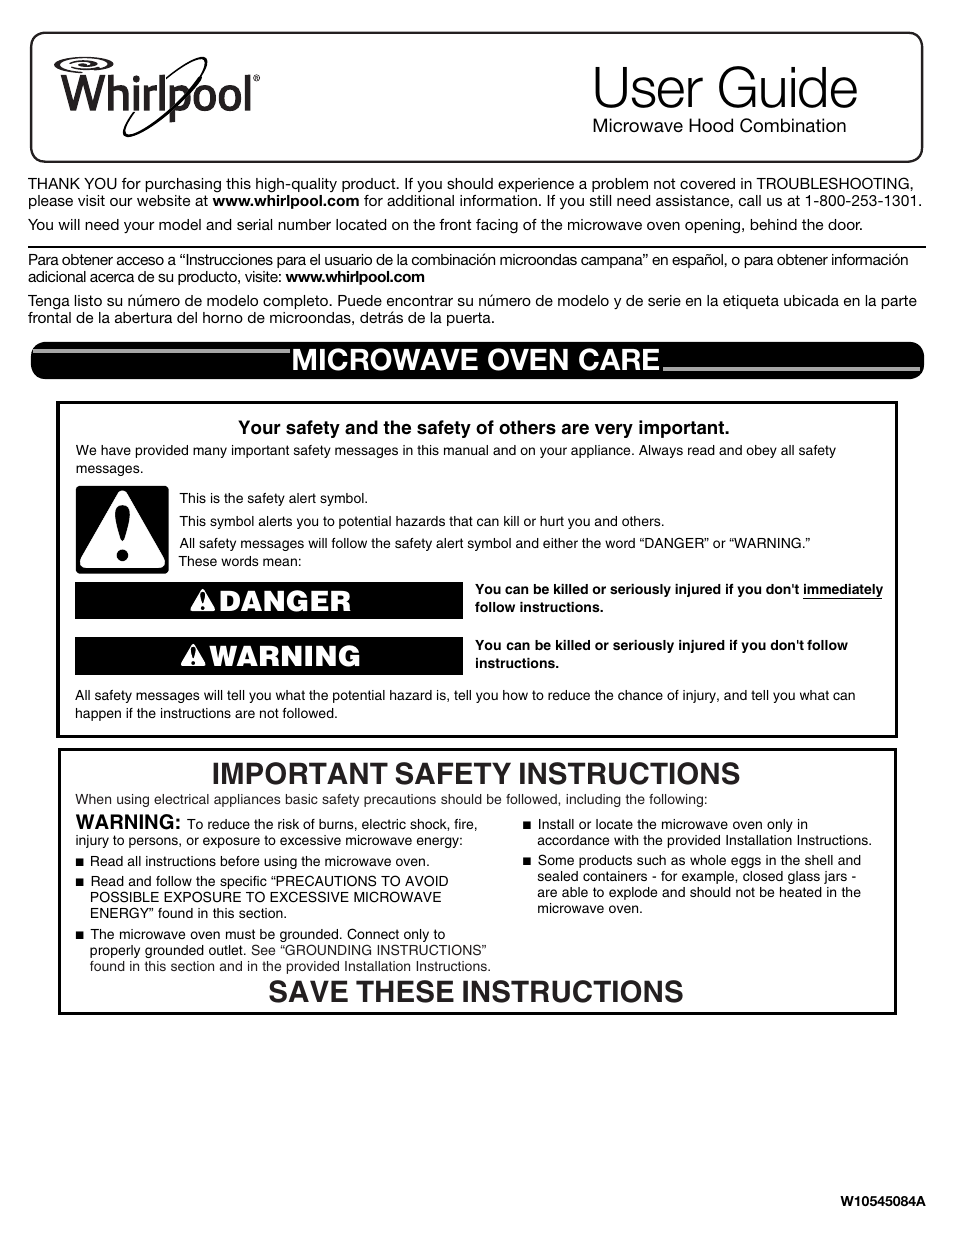 whirlpool wmh53520cs user manual 8 pages rh manualsdir com Whirlpool Gold Microwave Whirlpool Washer